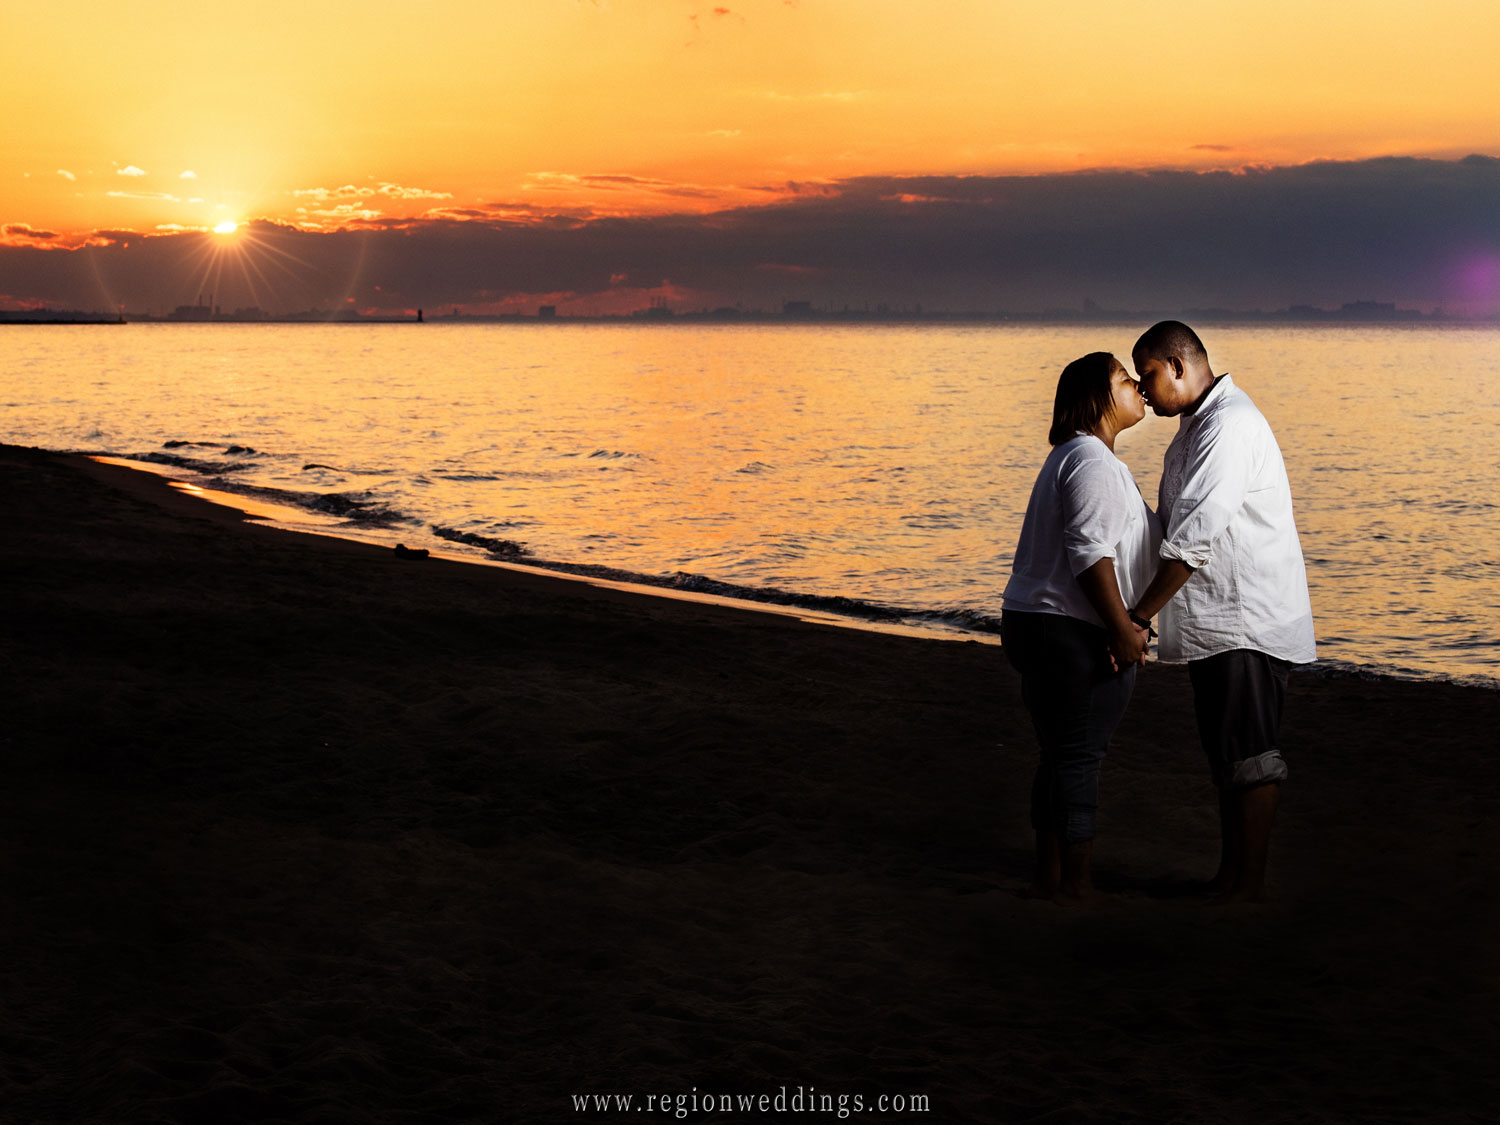 Sunset engagement photo off of Lake Michigan.